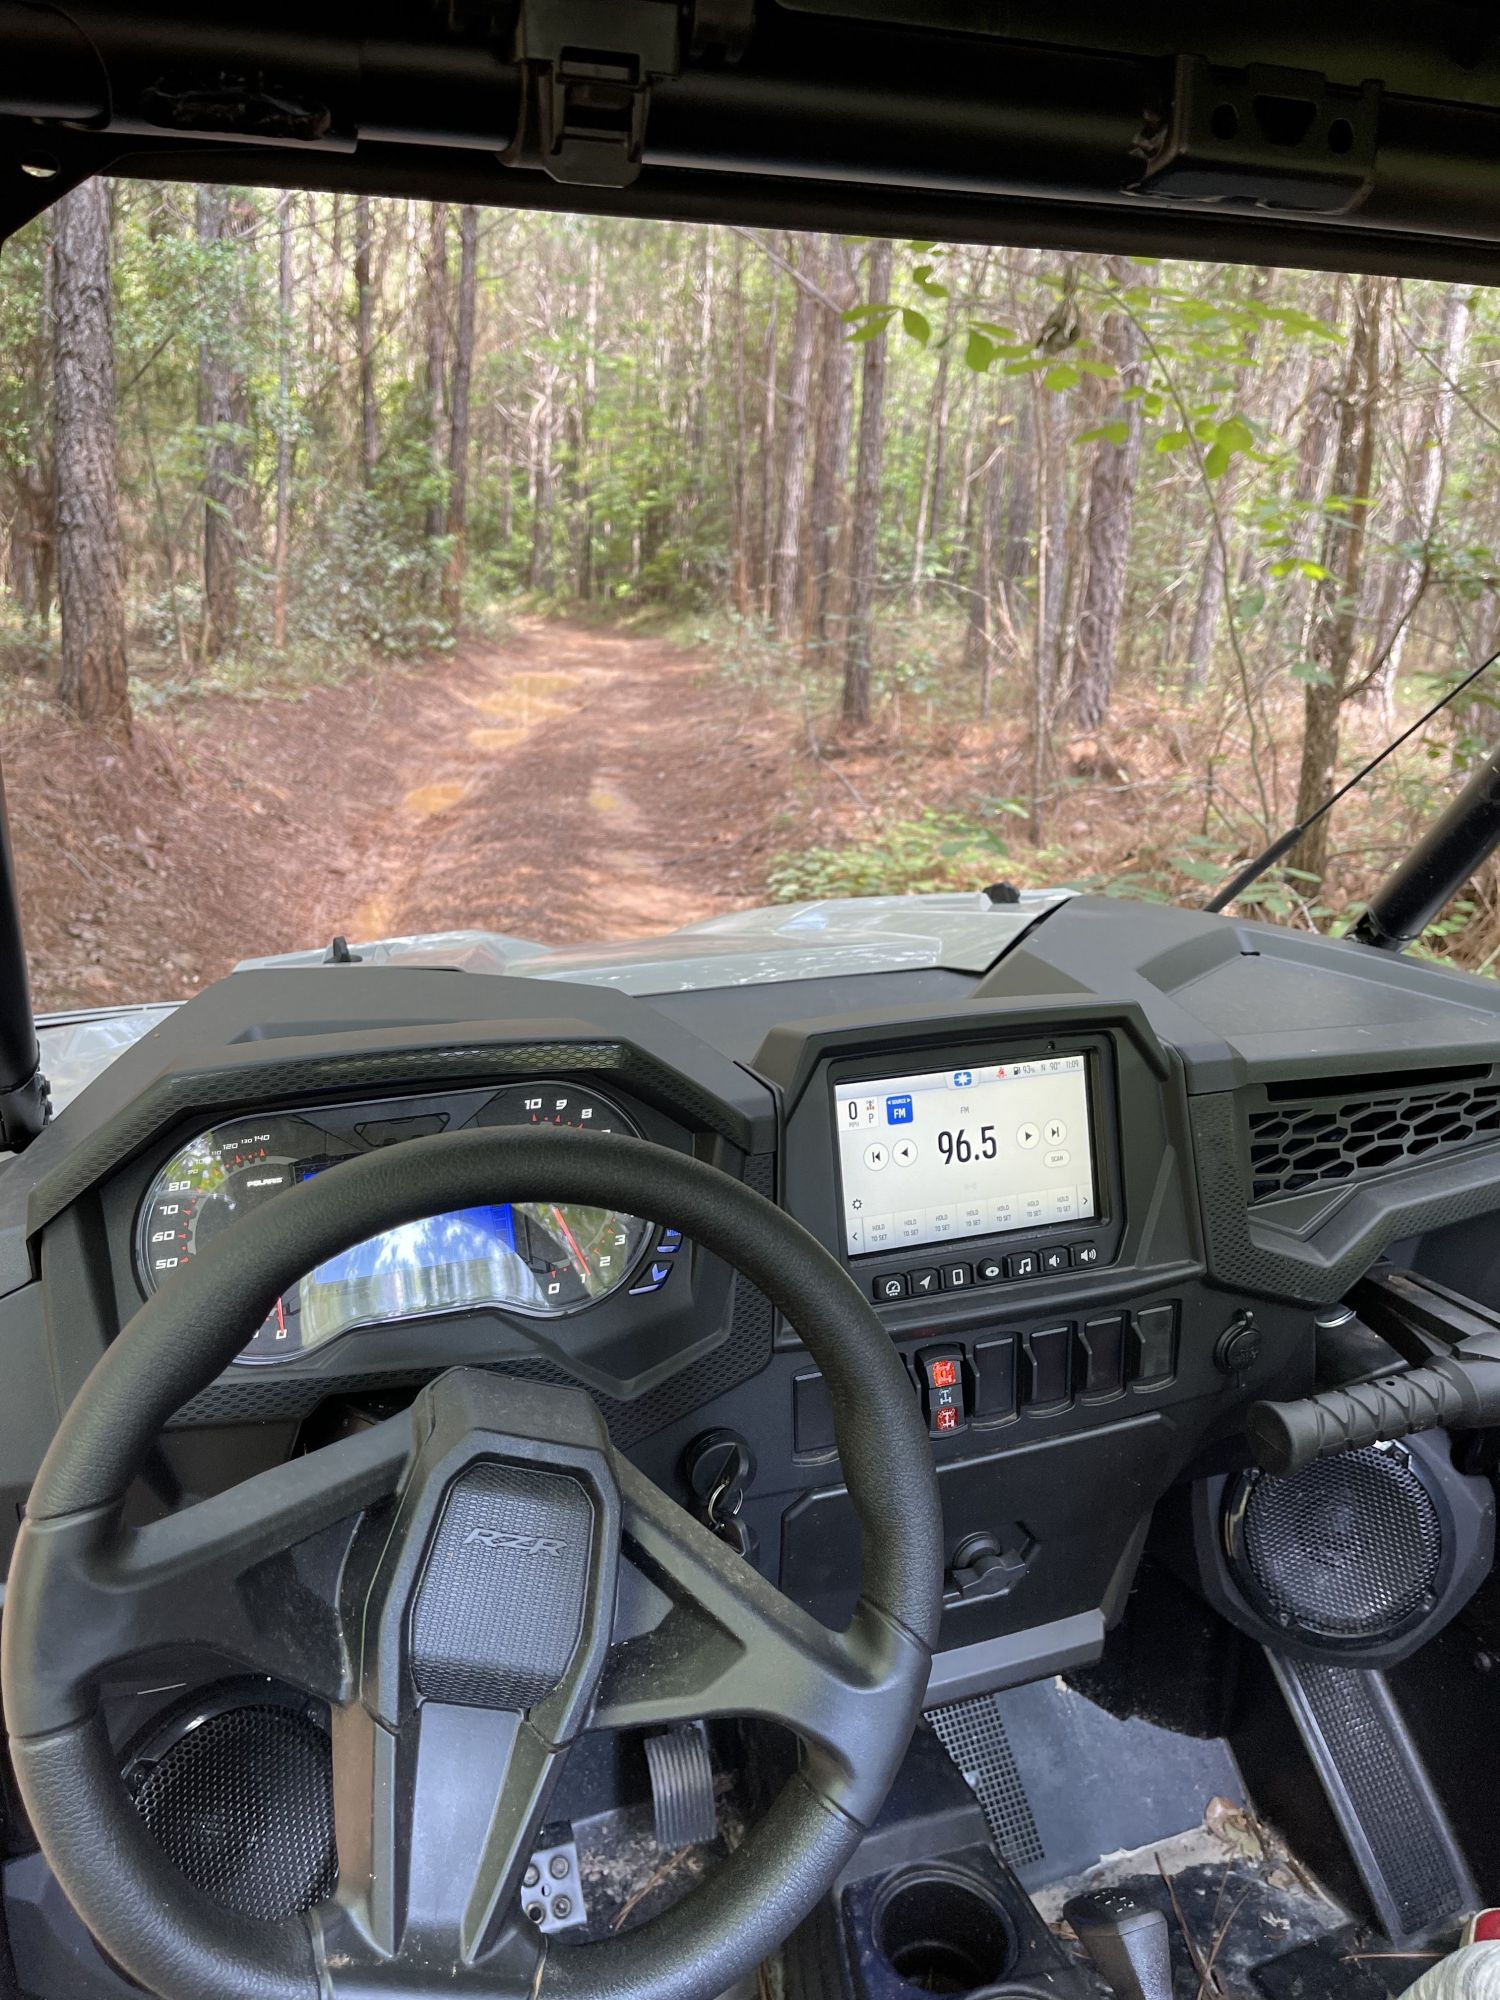 rzr trail interior, looking ahead to the trail through the woods